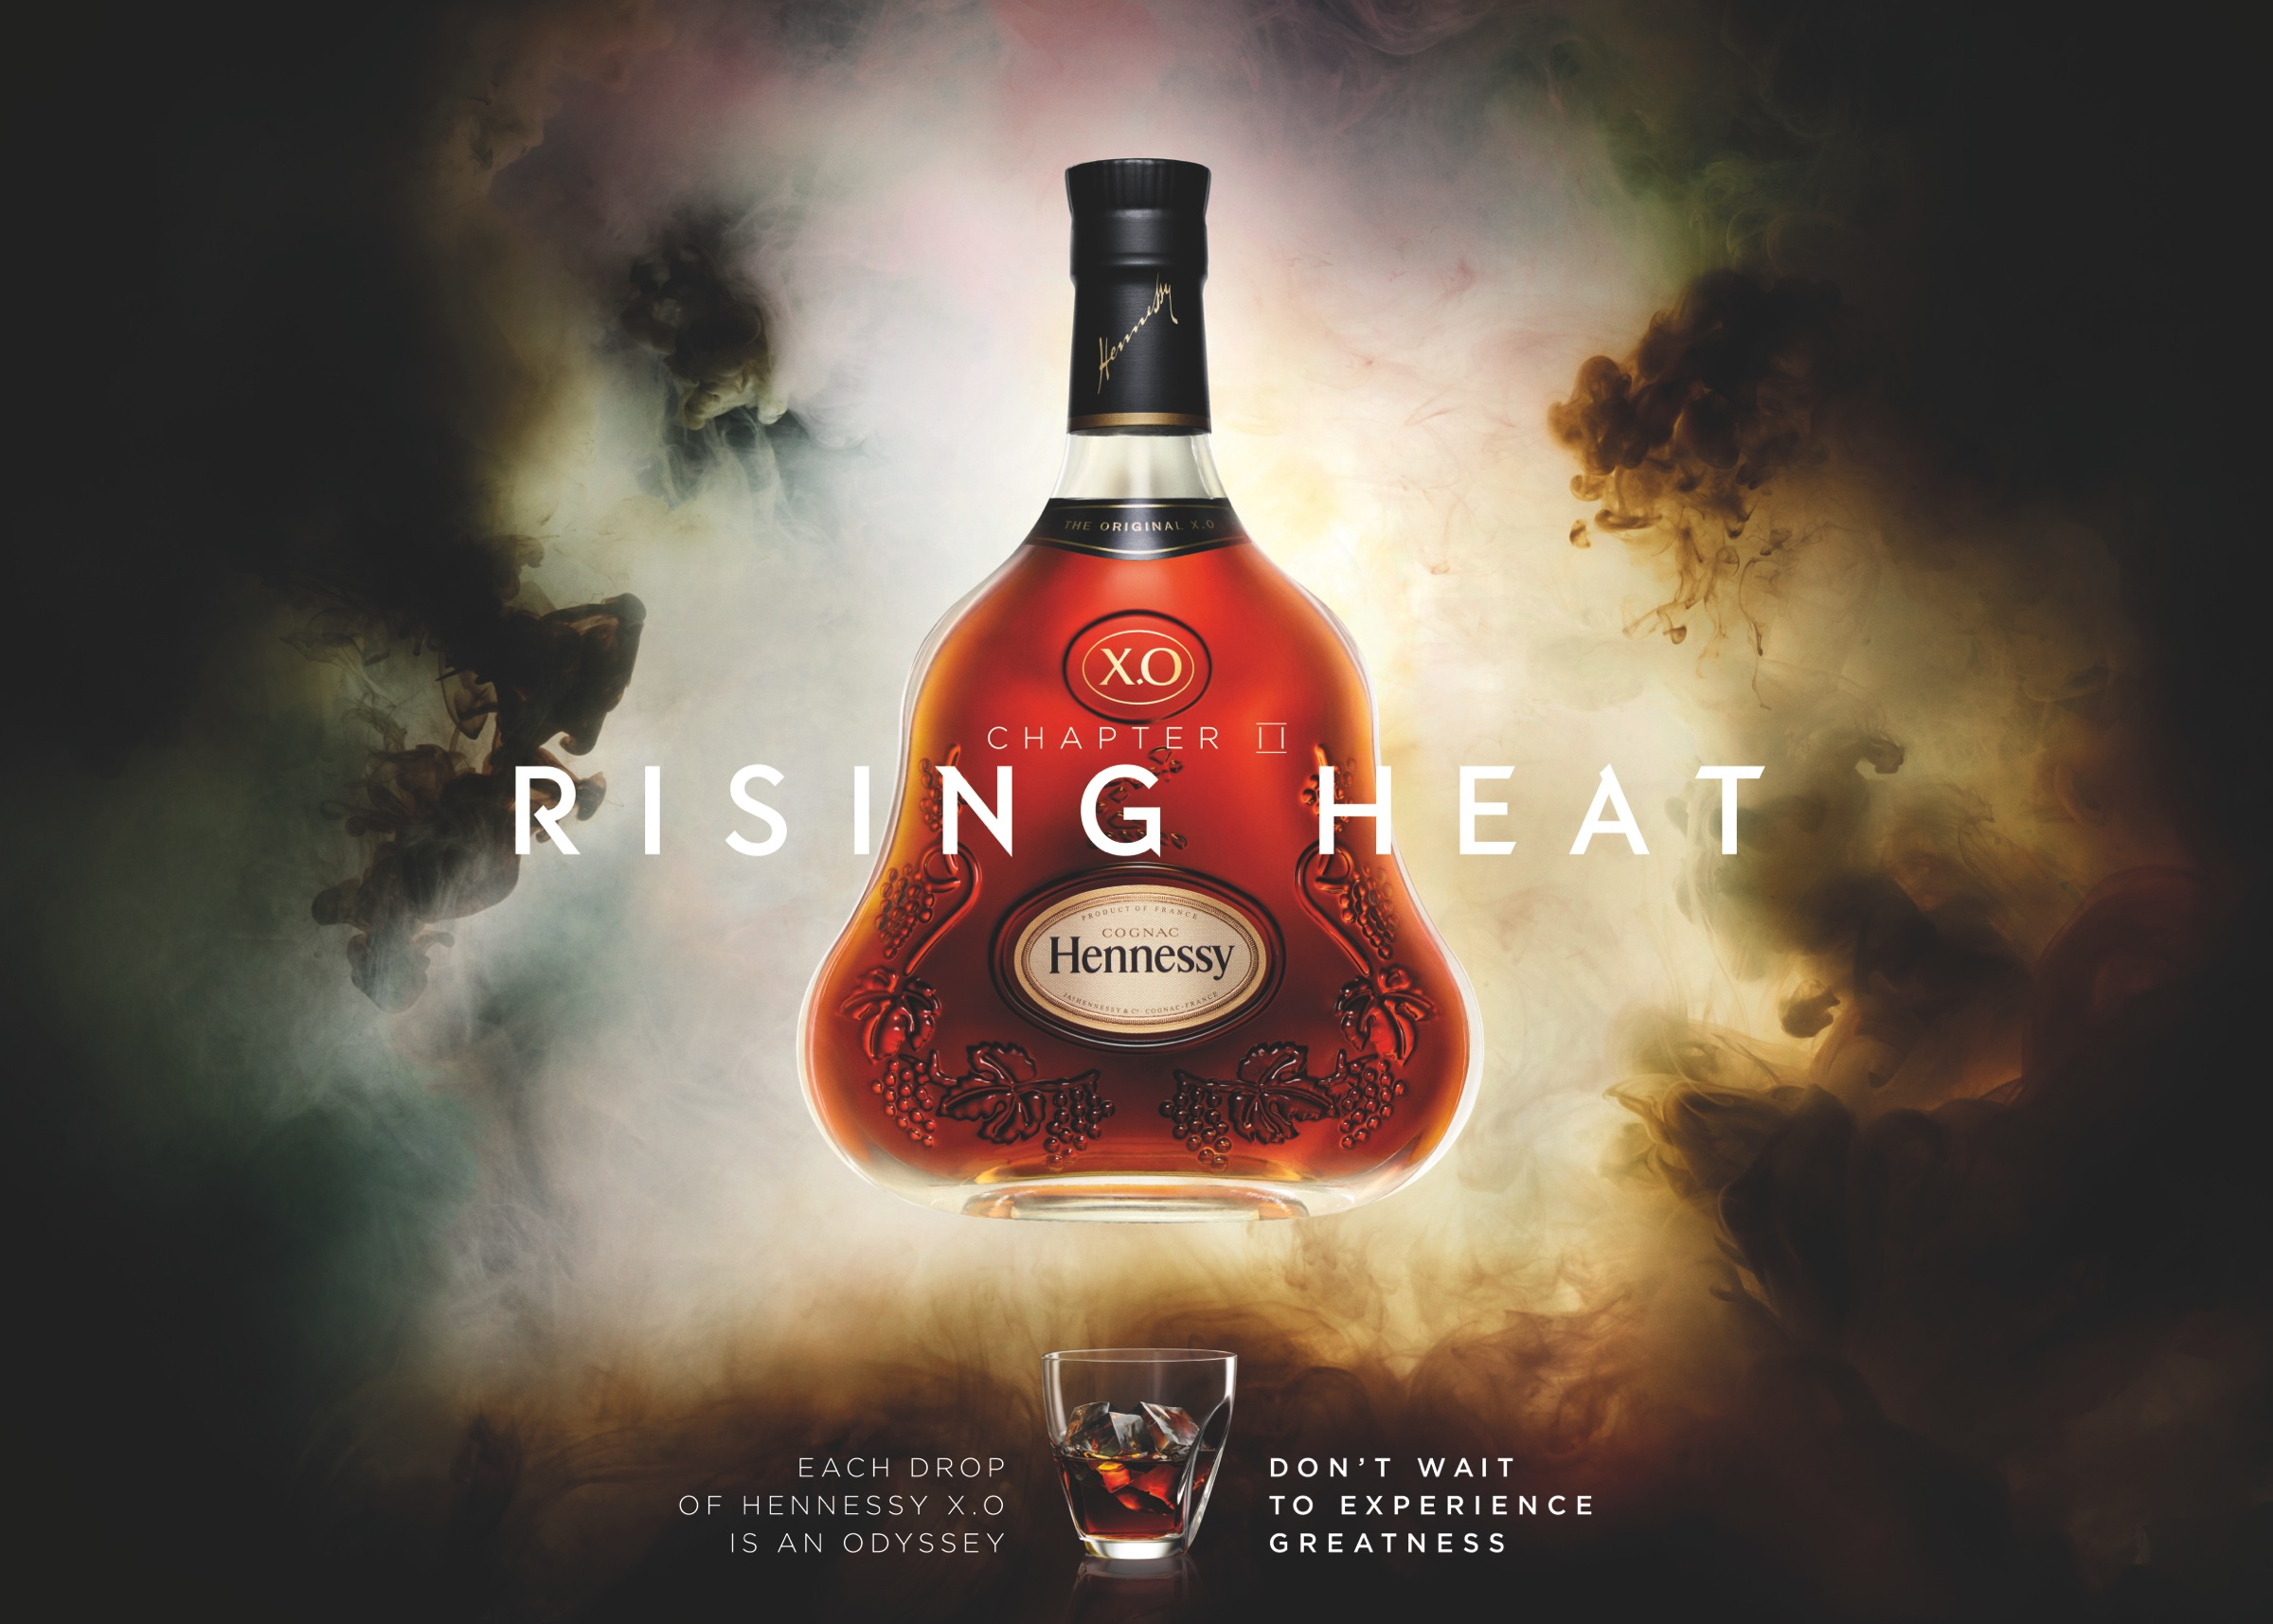 hennessy-xo-cognac-odyssey-ads-marketing-publicite-agence-ddb-paris-5